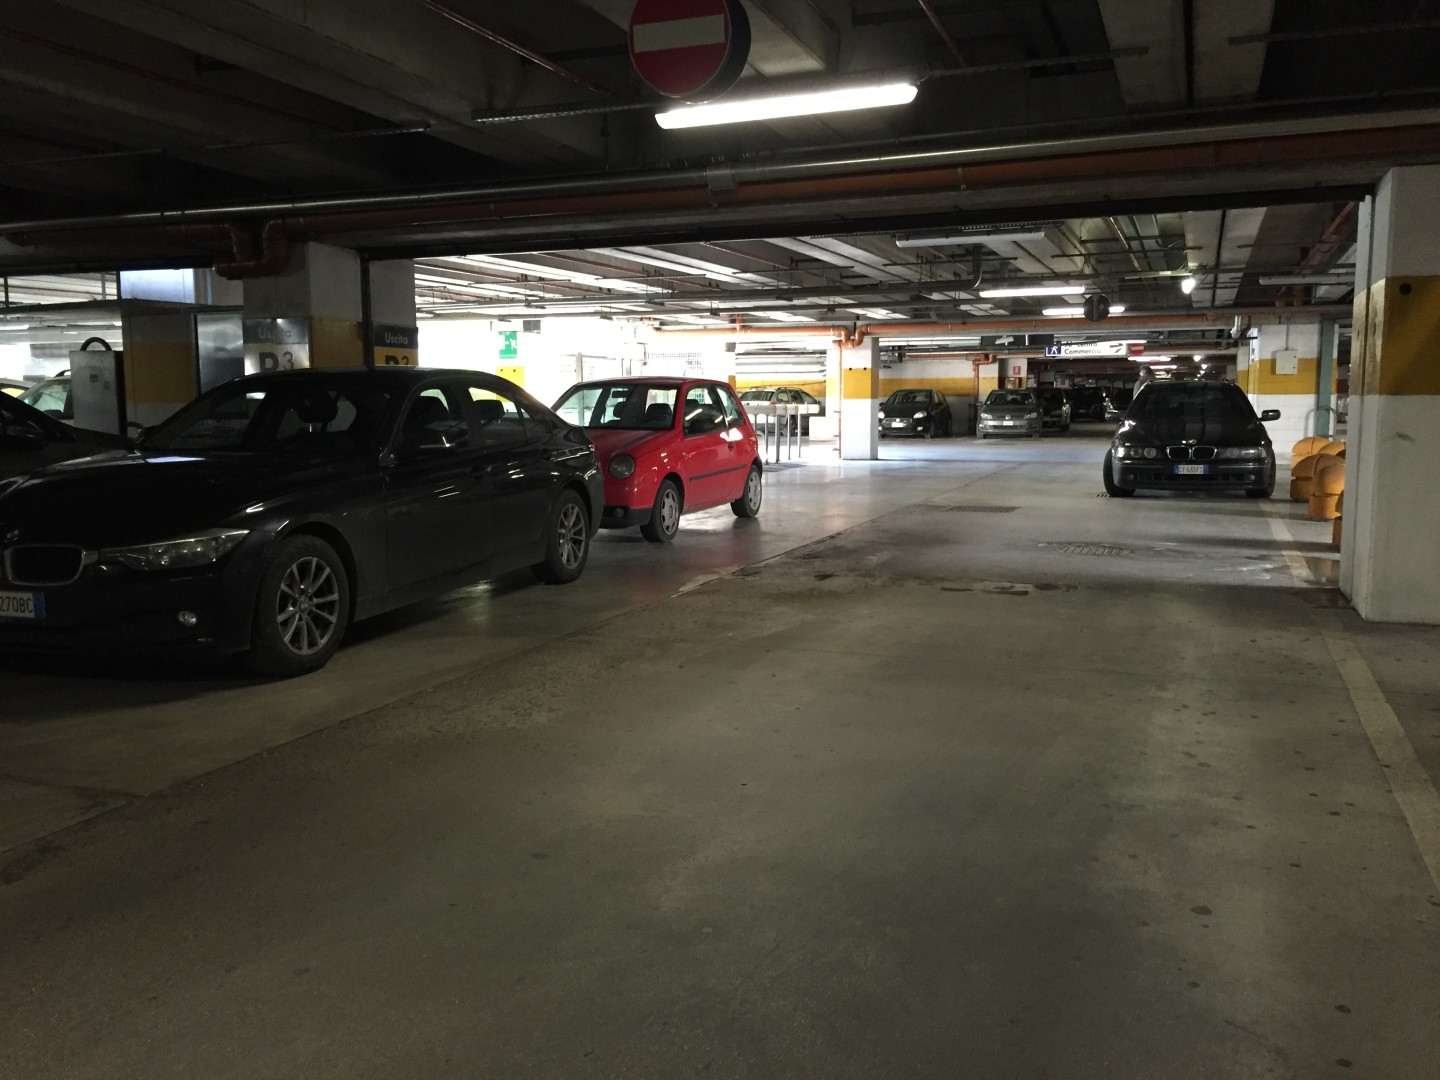 All the cars here are parked. The driver of the car on the right obviously could not walk. The drivers of the cars on the left also made their own spaces in this garage.